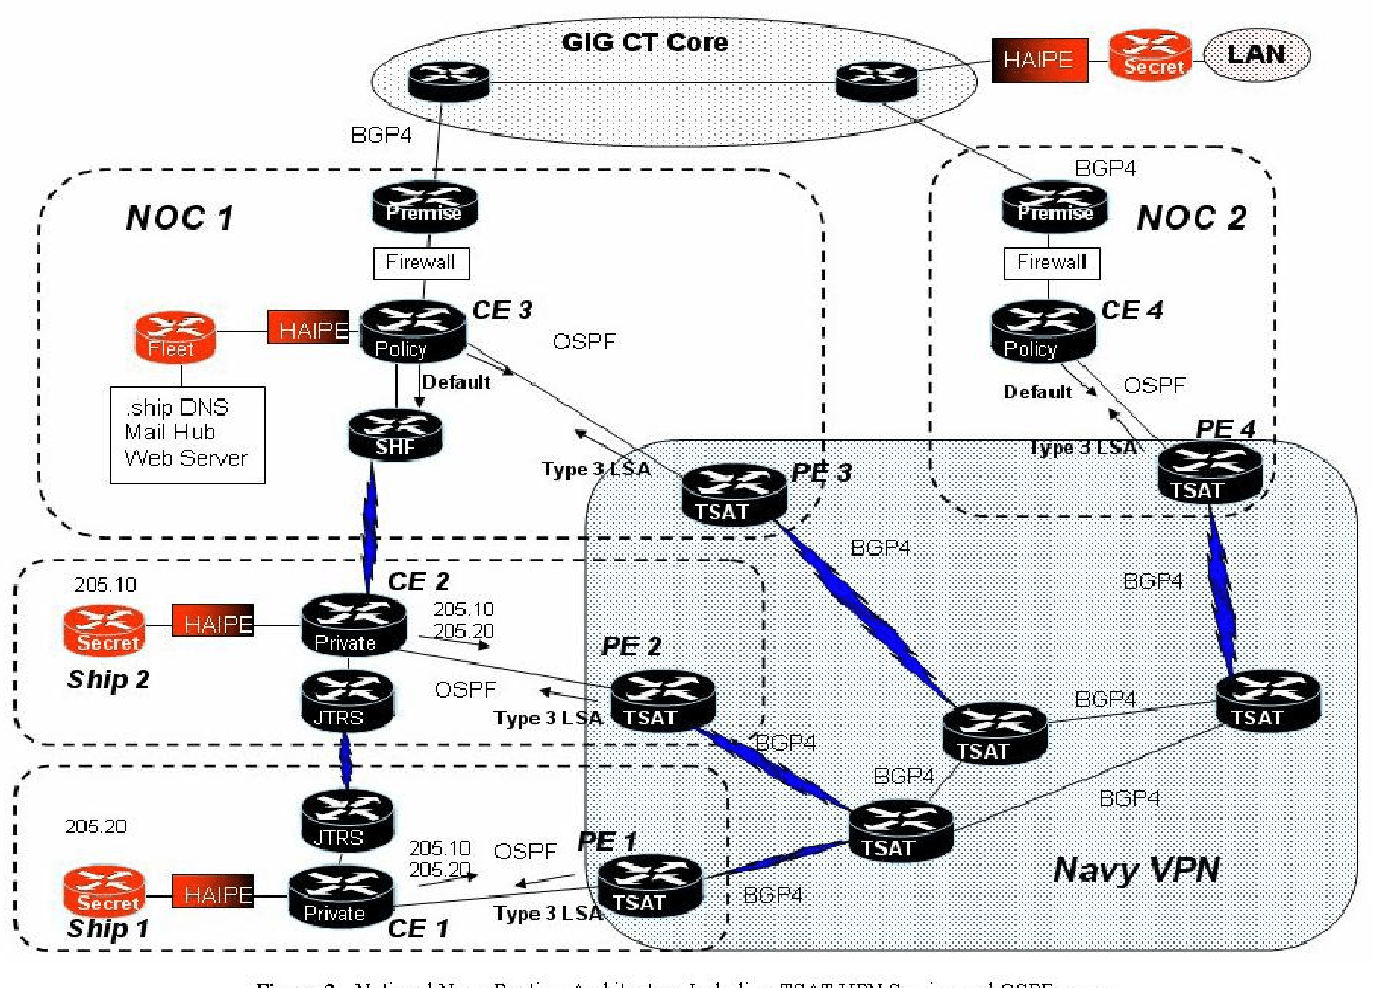 hight resolution of notional navy routing architecture including tsat vpn service and ospf usage